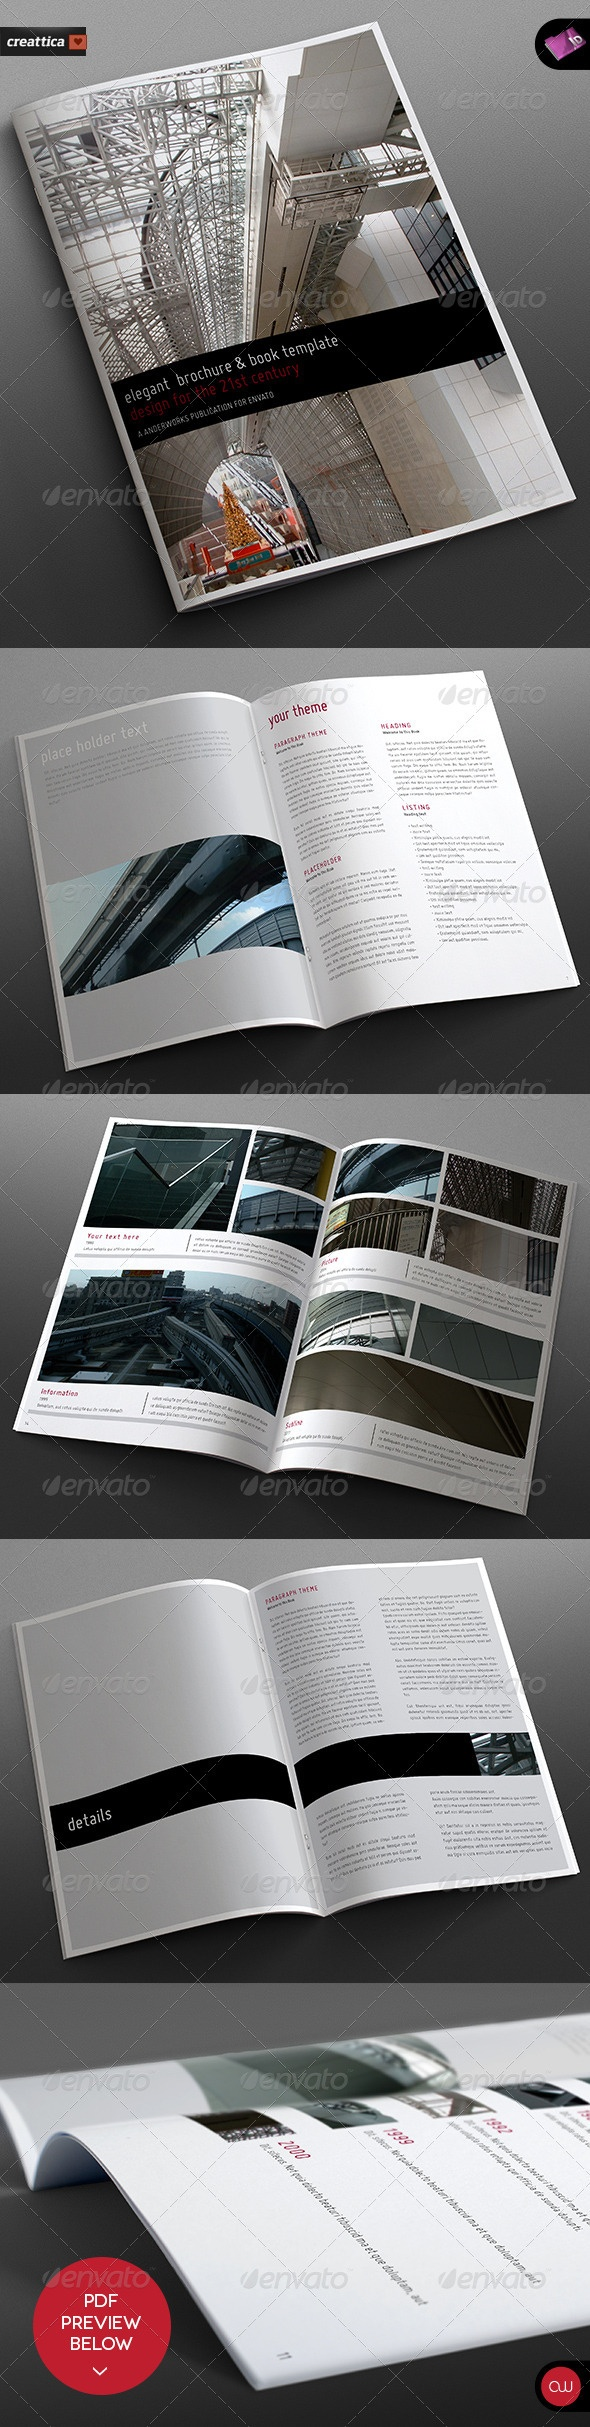 Elegant Brochure & Book Template - 18 Pages | rokaho's